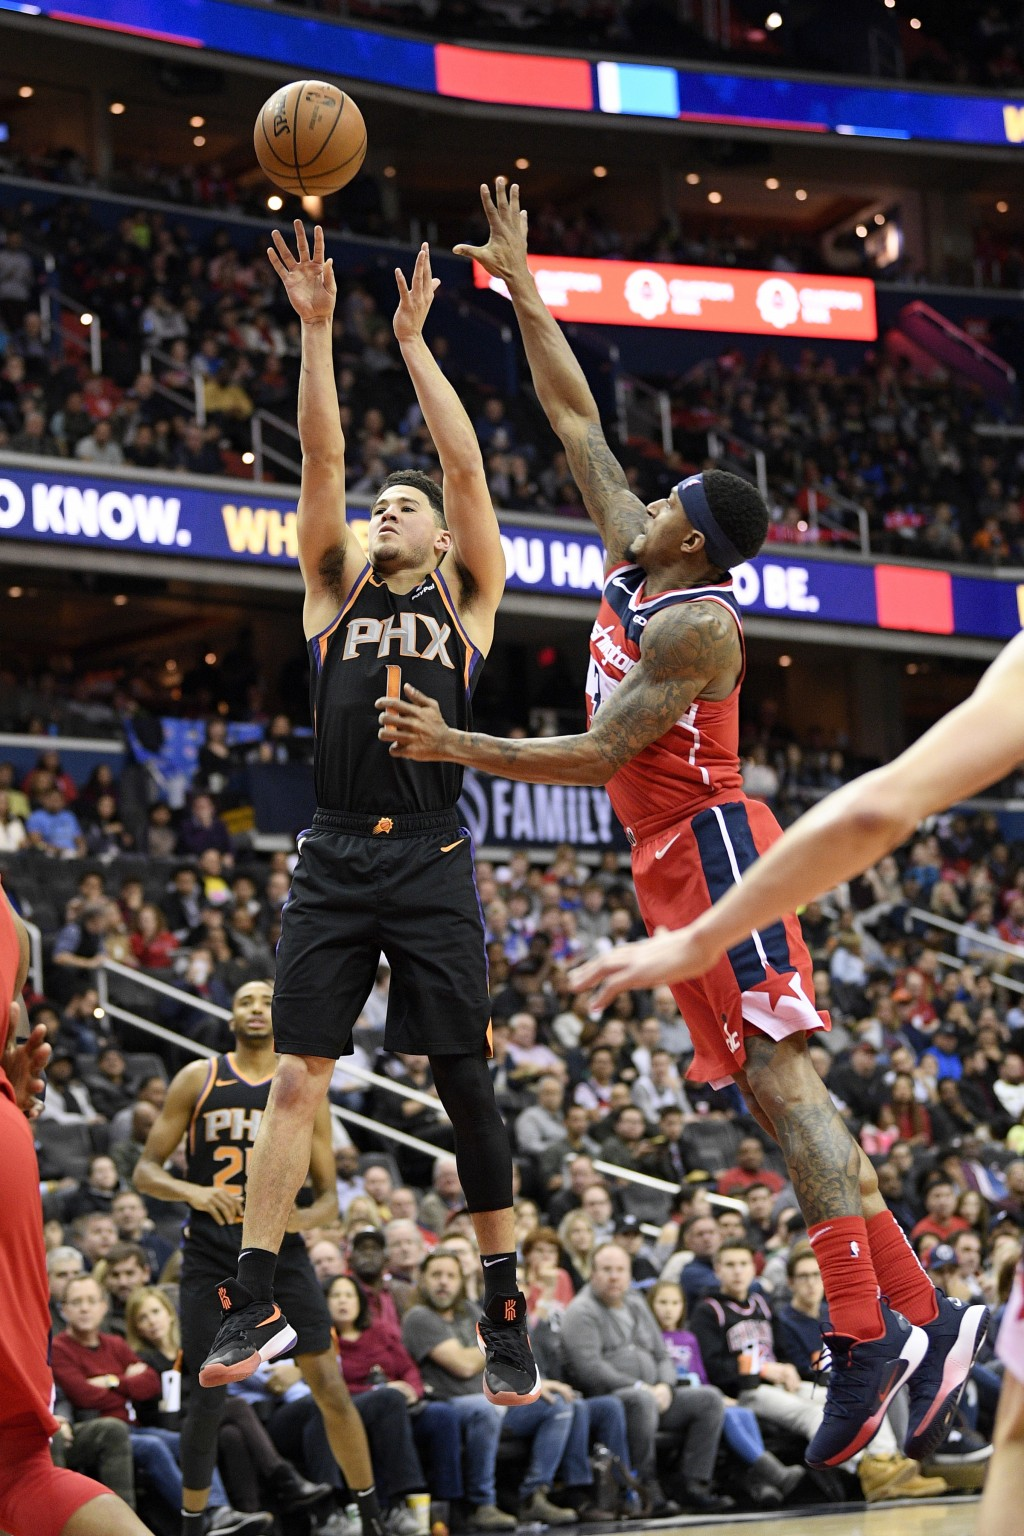 Phoenix Suns guard Devin Booker (1) shoots against Washington Wizards guard Bradley Beal (3) during the first half of an NBA basketball game, Saturday